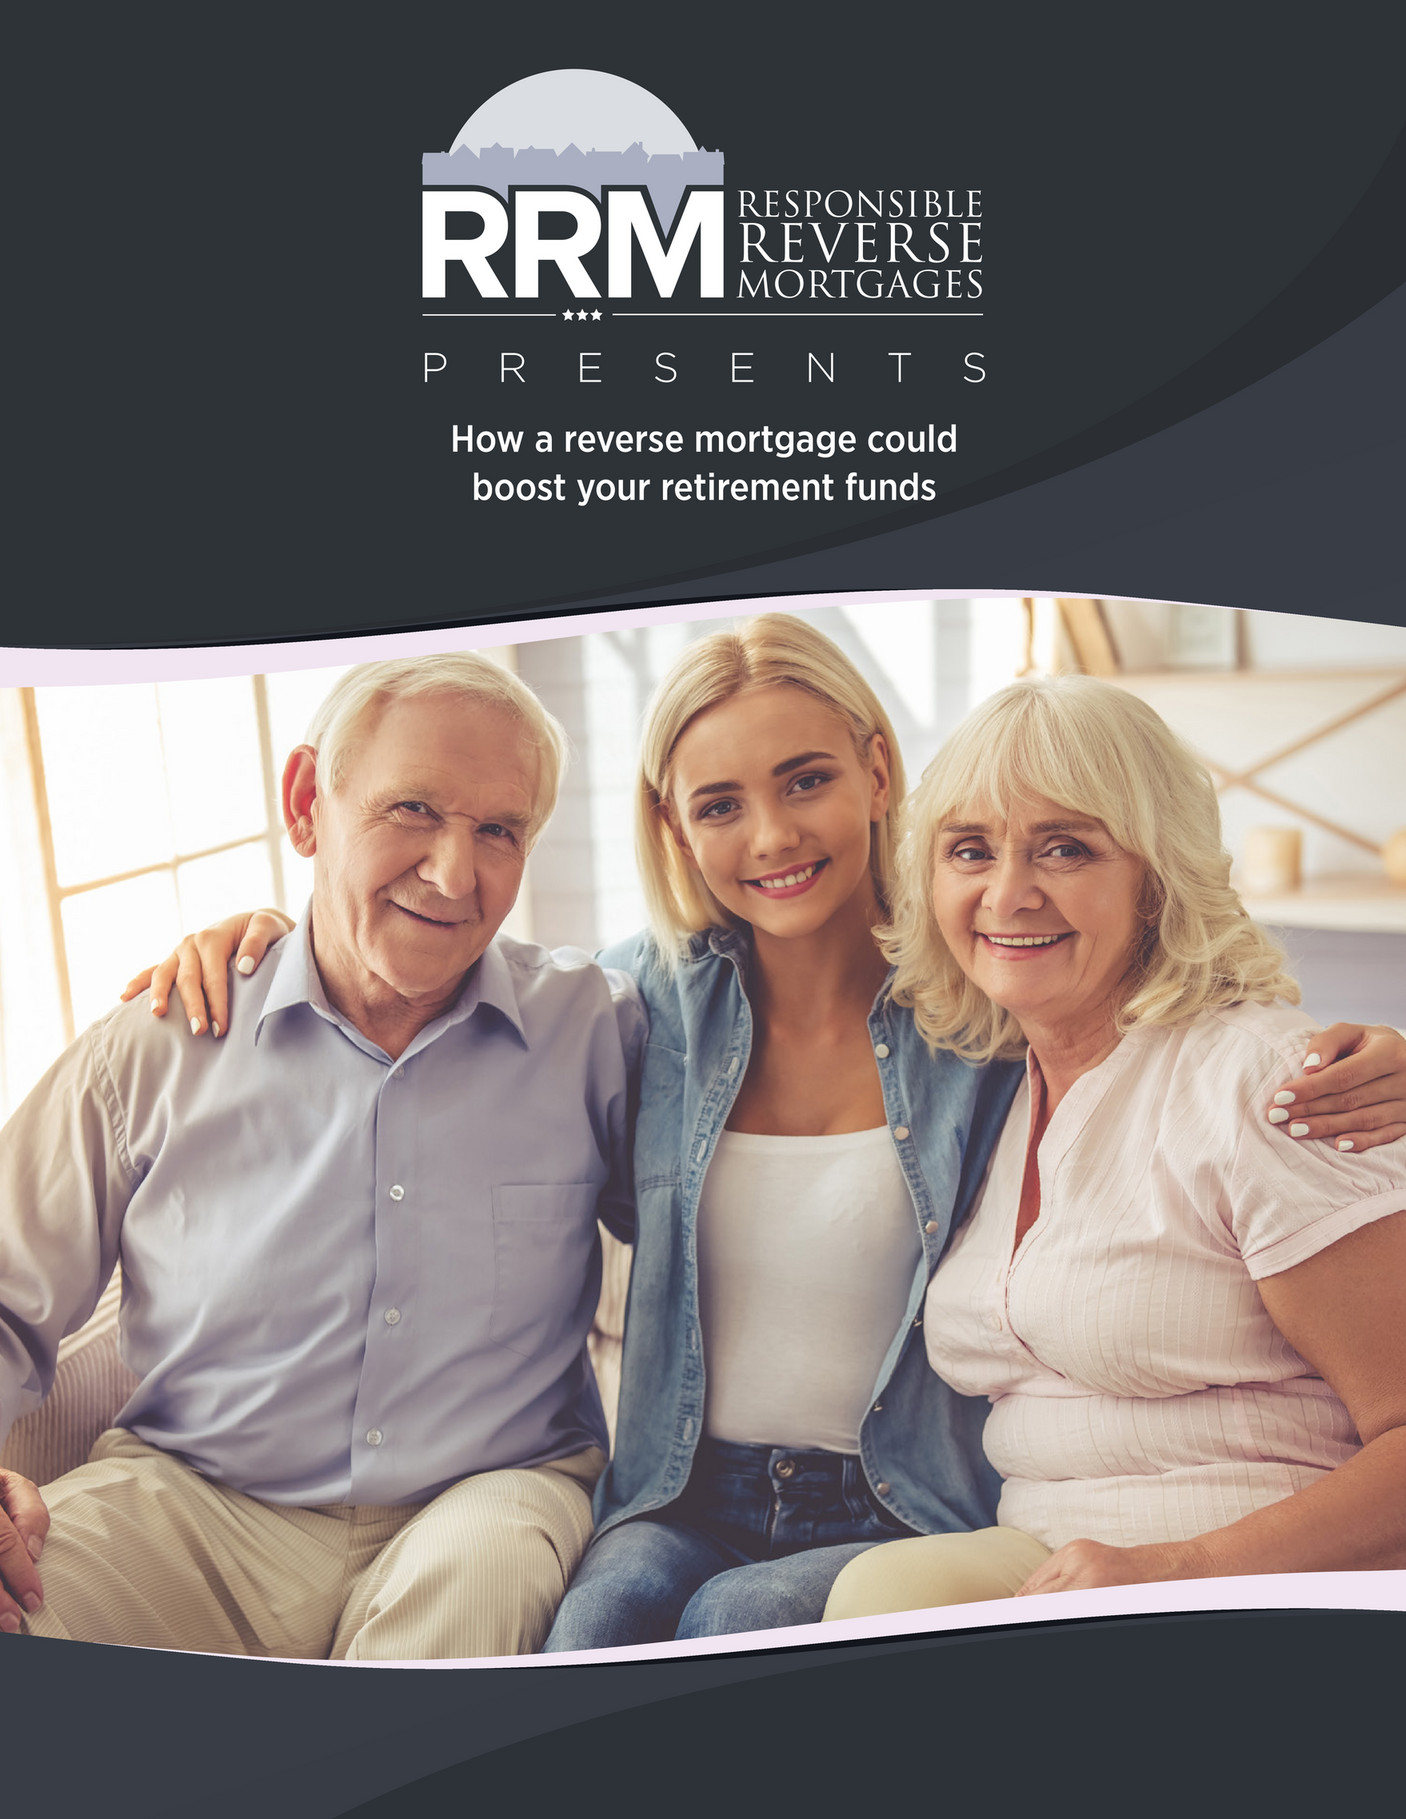 Responsible Life - Responsible Reverse Mortgage Guide - Page 4-5